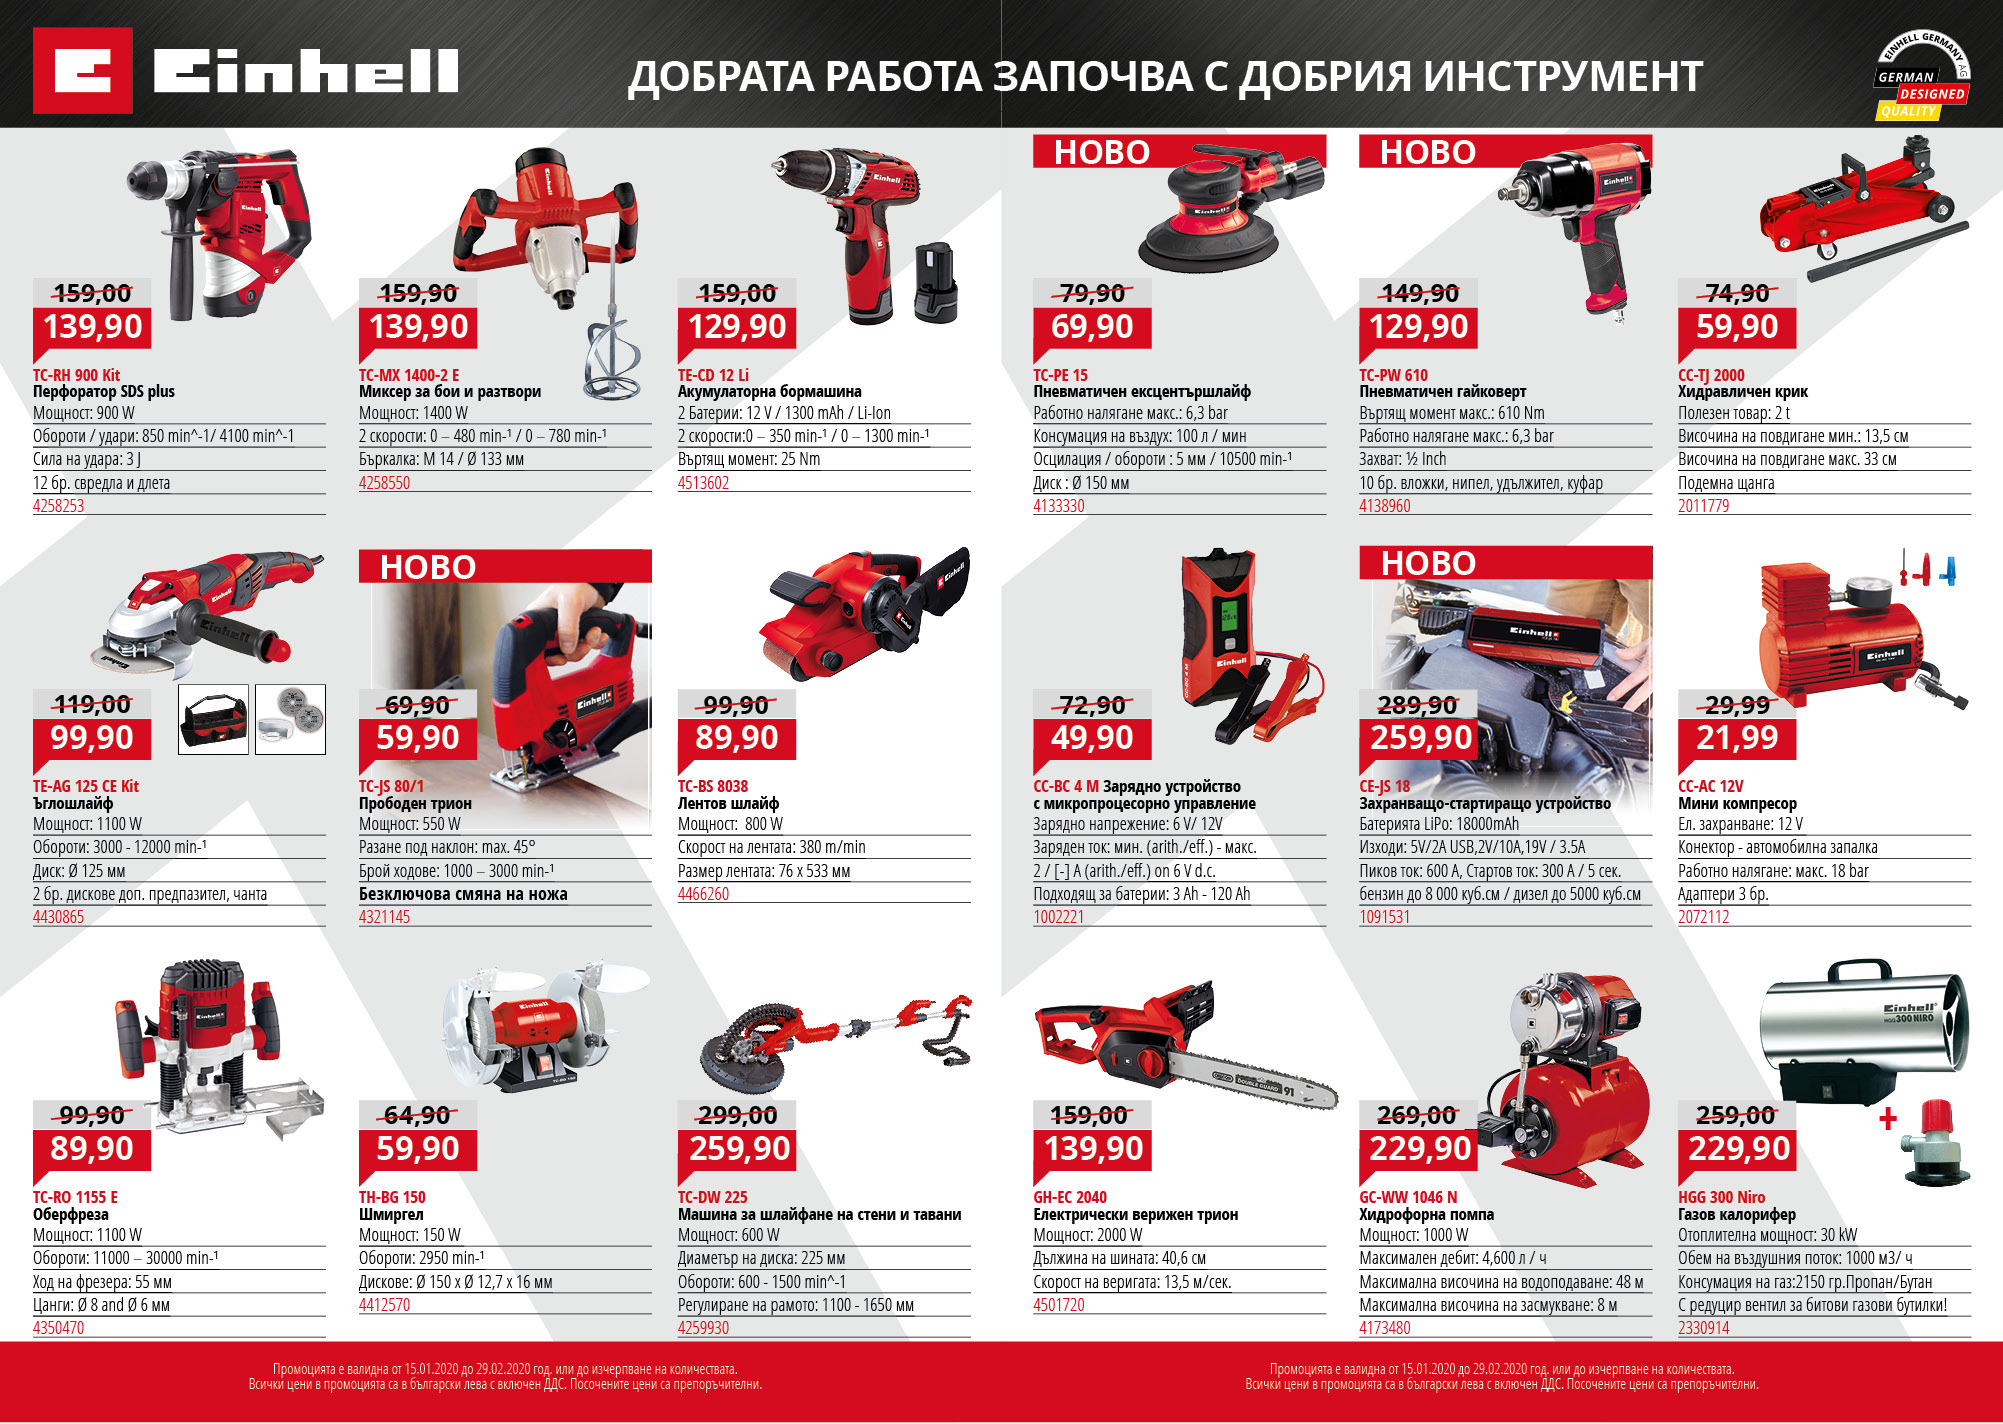 WWW.EMS.BG - EINHELL PROMOTION DEALERS 15.01.2020 - 29.02.2020 FLAER Page2-Page3